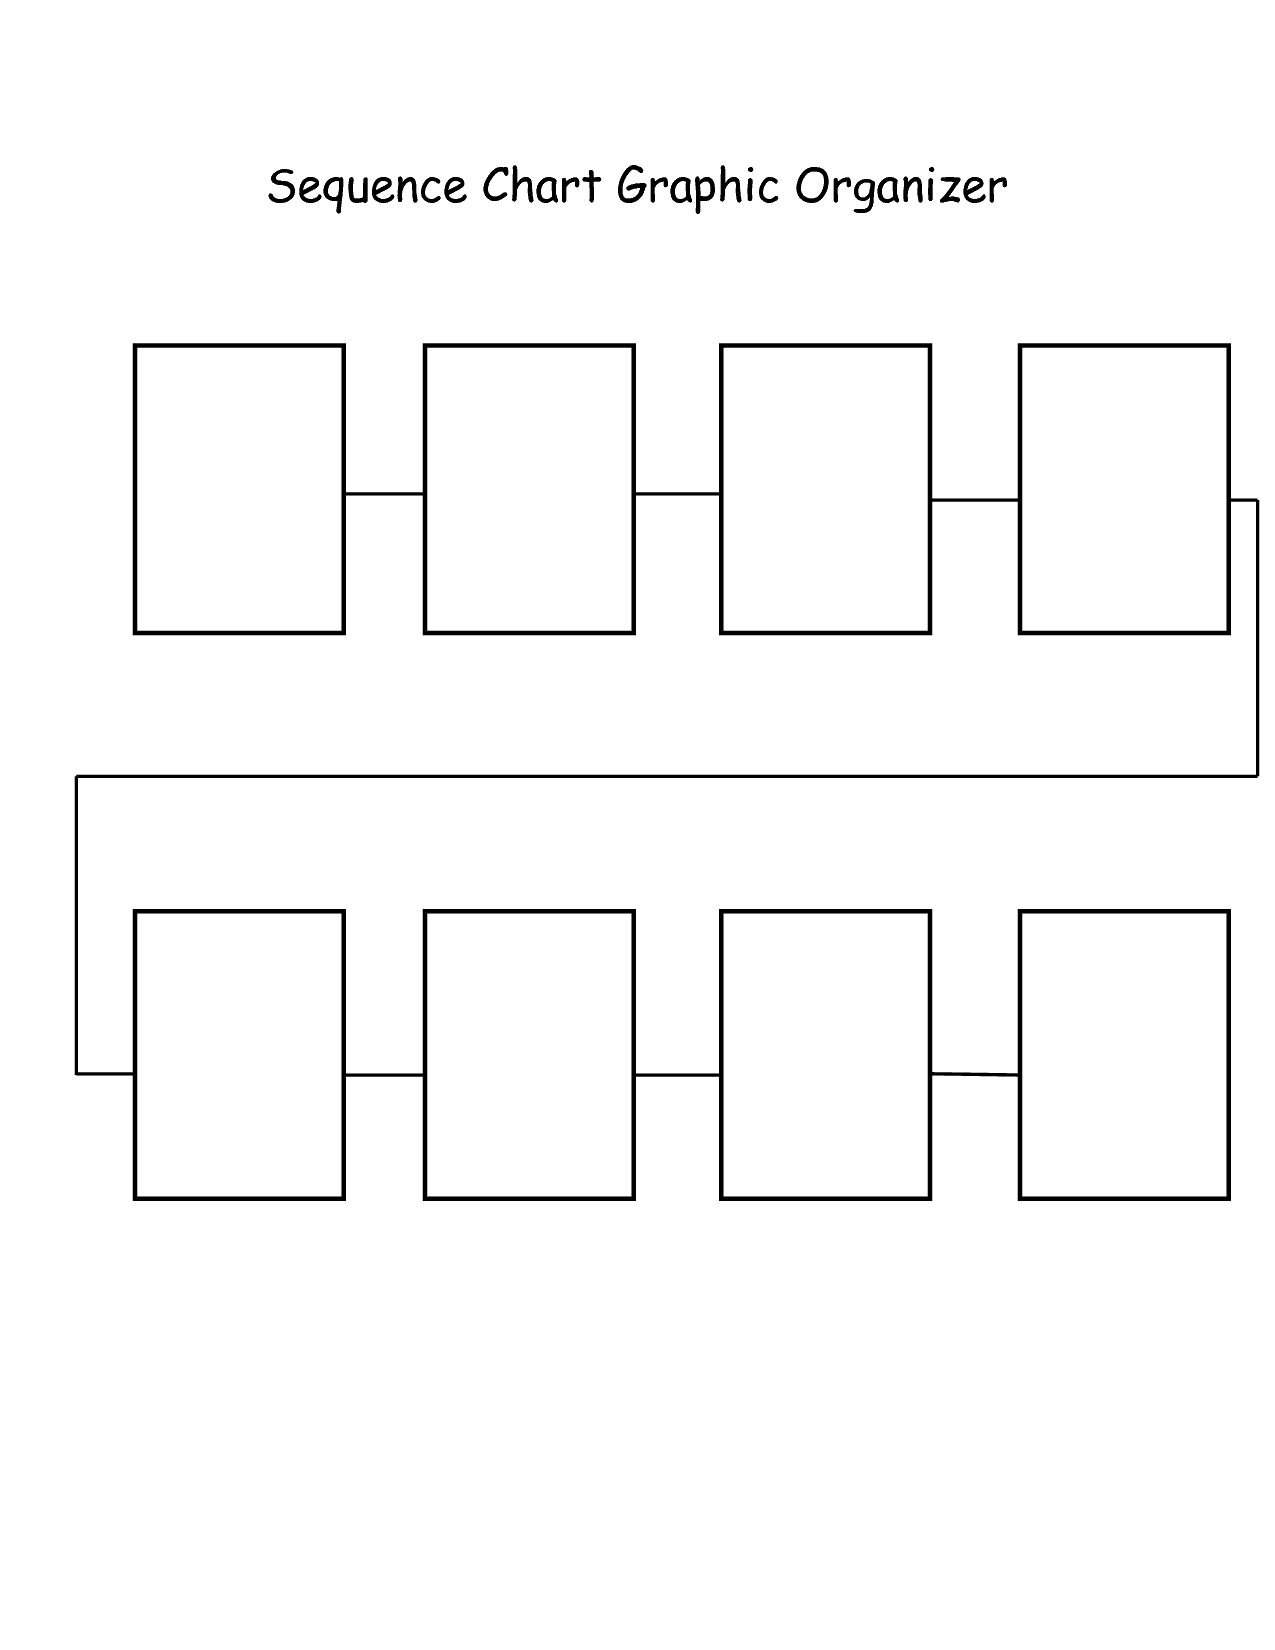 blank graphic organizers | sequence chart graphic organizer | baby, Powerpoint templates